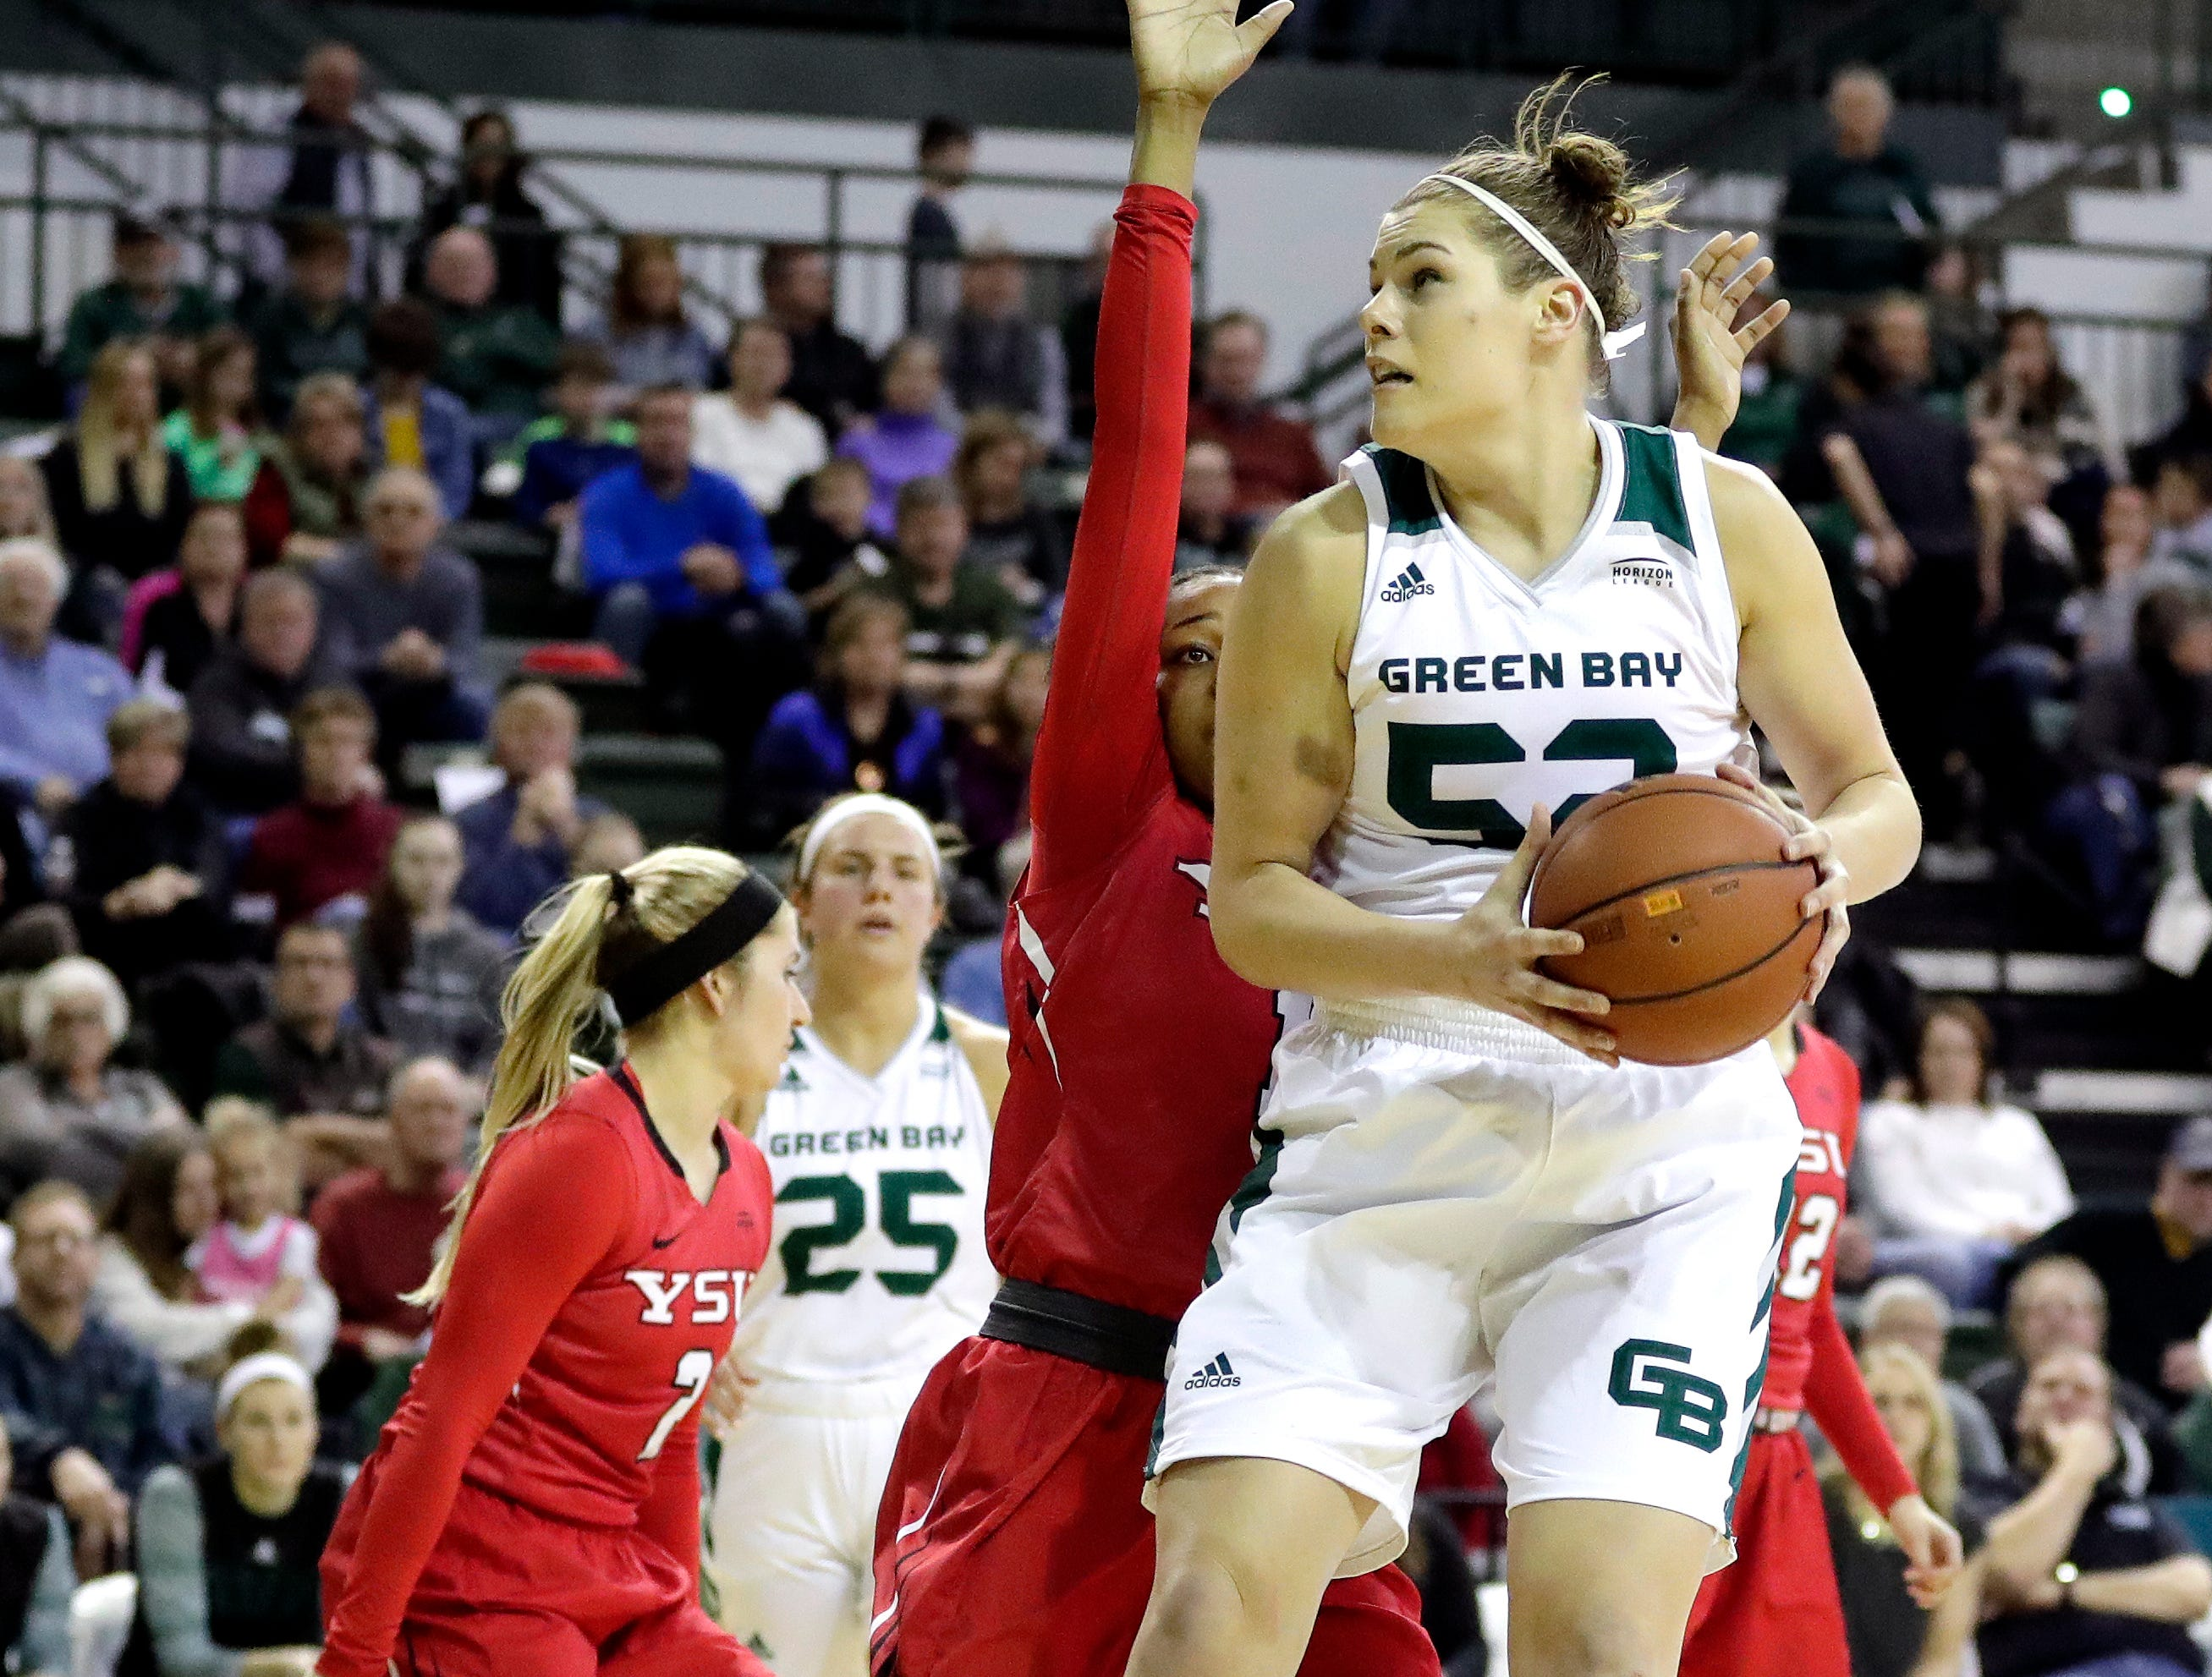 The UWGB women's basketball team defeated Youngstown State 60-42 on Jan. 12, 2019 at the Kress Center. Sarah Kloepping/USA TODAY NETWORK-Wisconsin